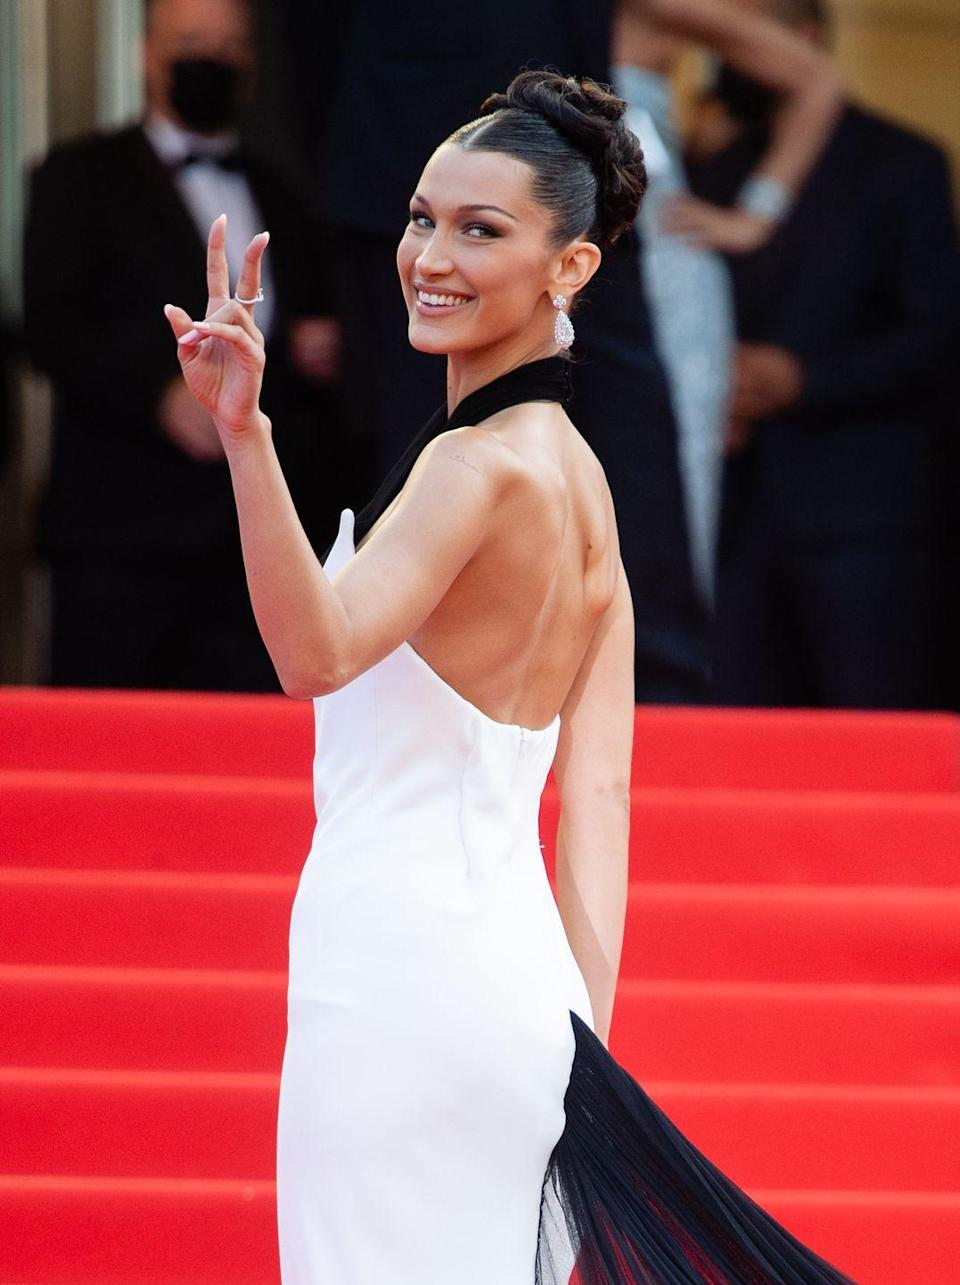 <p>Model <strong>Bella Hadid</strong>'s most recent hair color looks inky black at first glance, but in the right lighting, you can tell it's actually infused with red undertones. At a salon, ask for a red gloss on black hair to achieve this multi-tonal look.</p>